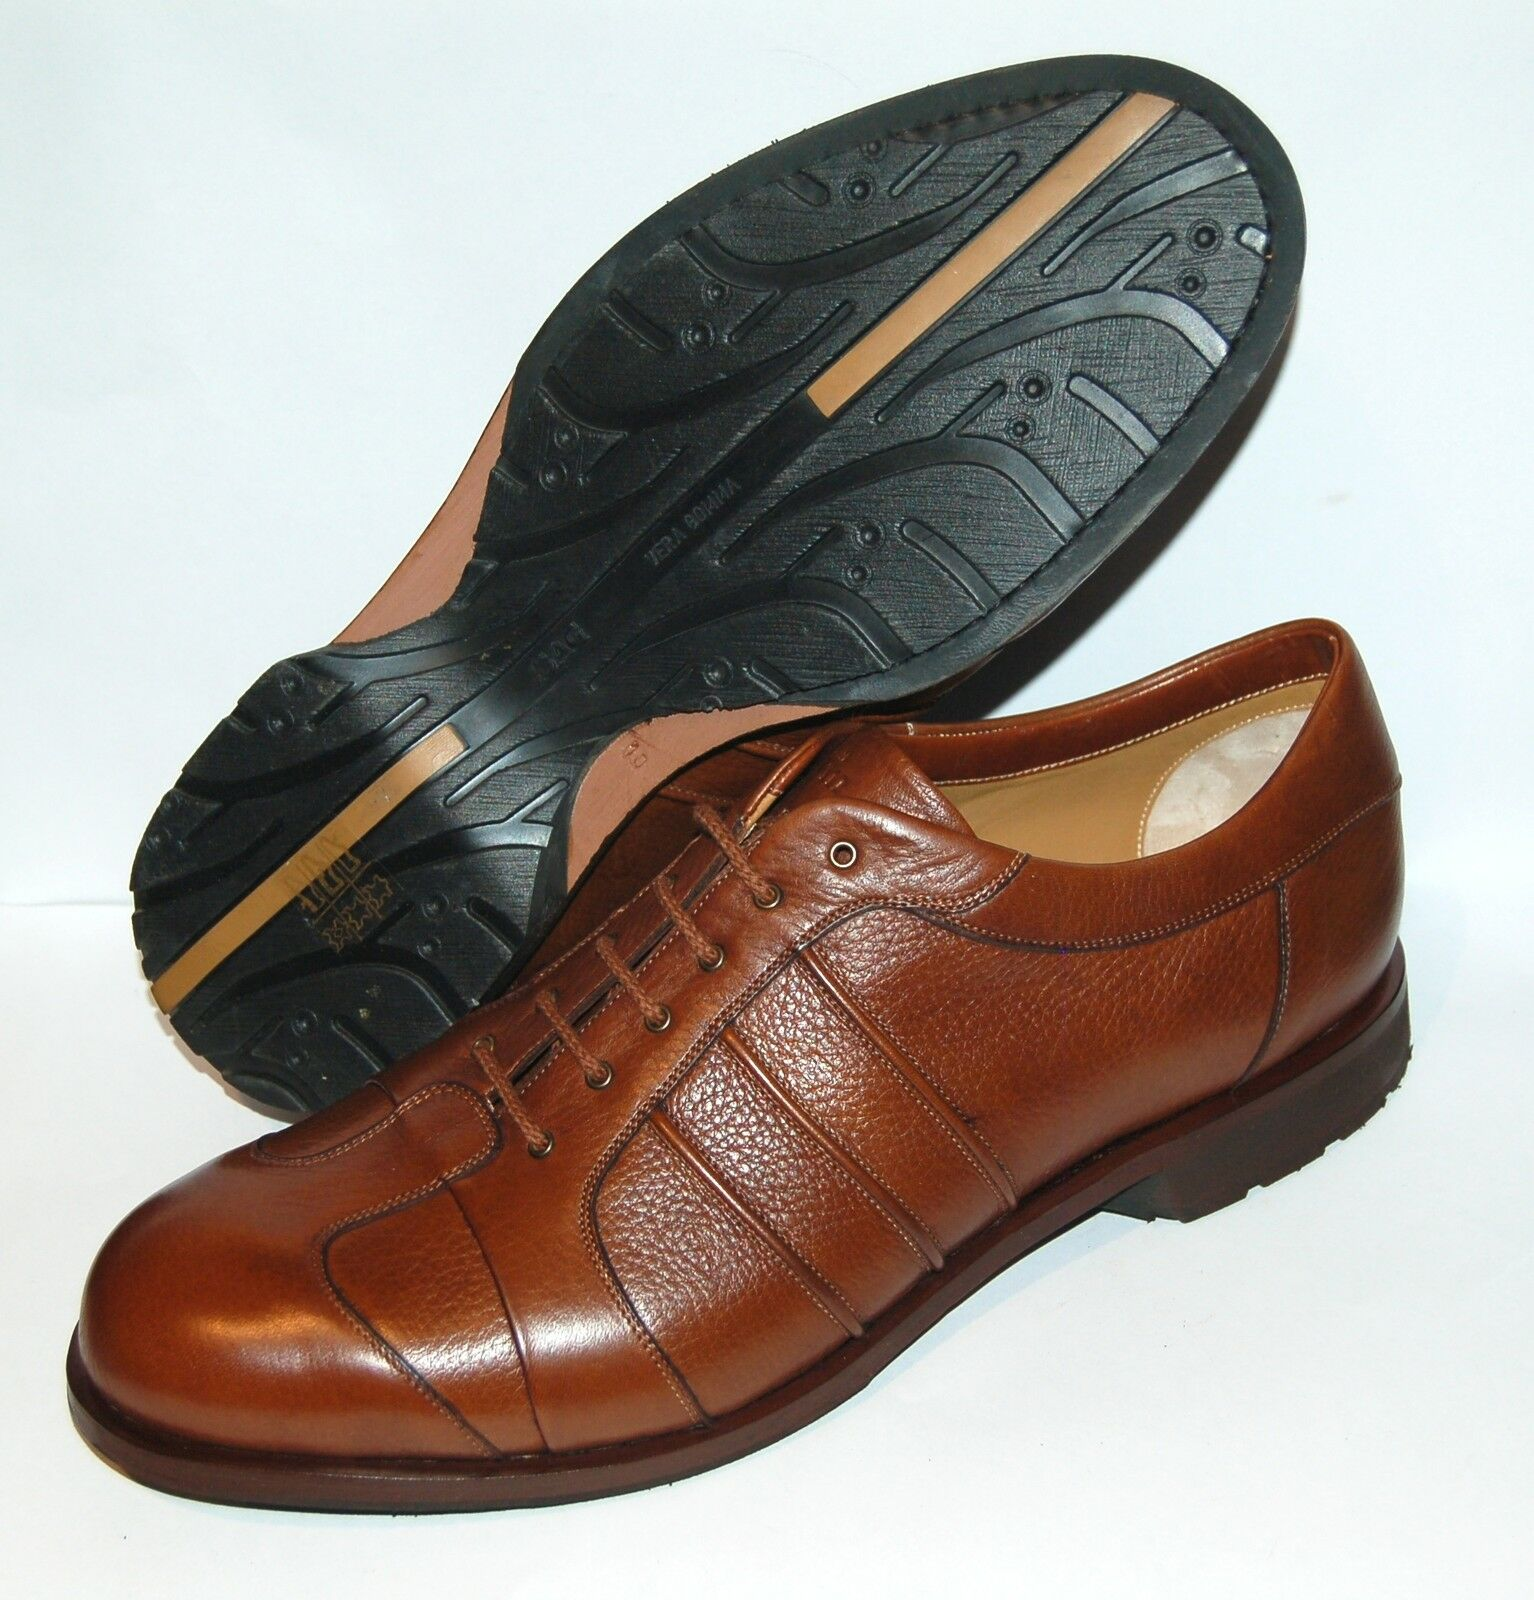 MAN - SNEACKER - DEER LEATHER/CERVO - INTERLAND RUBBER SOLE